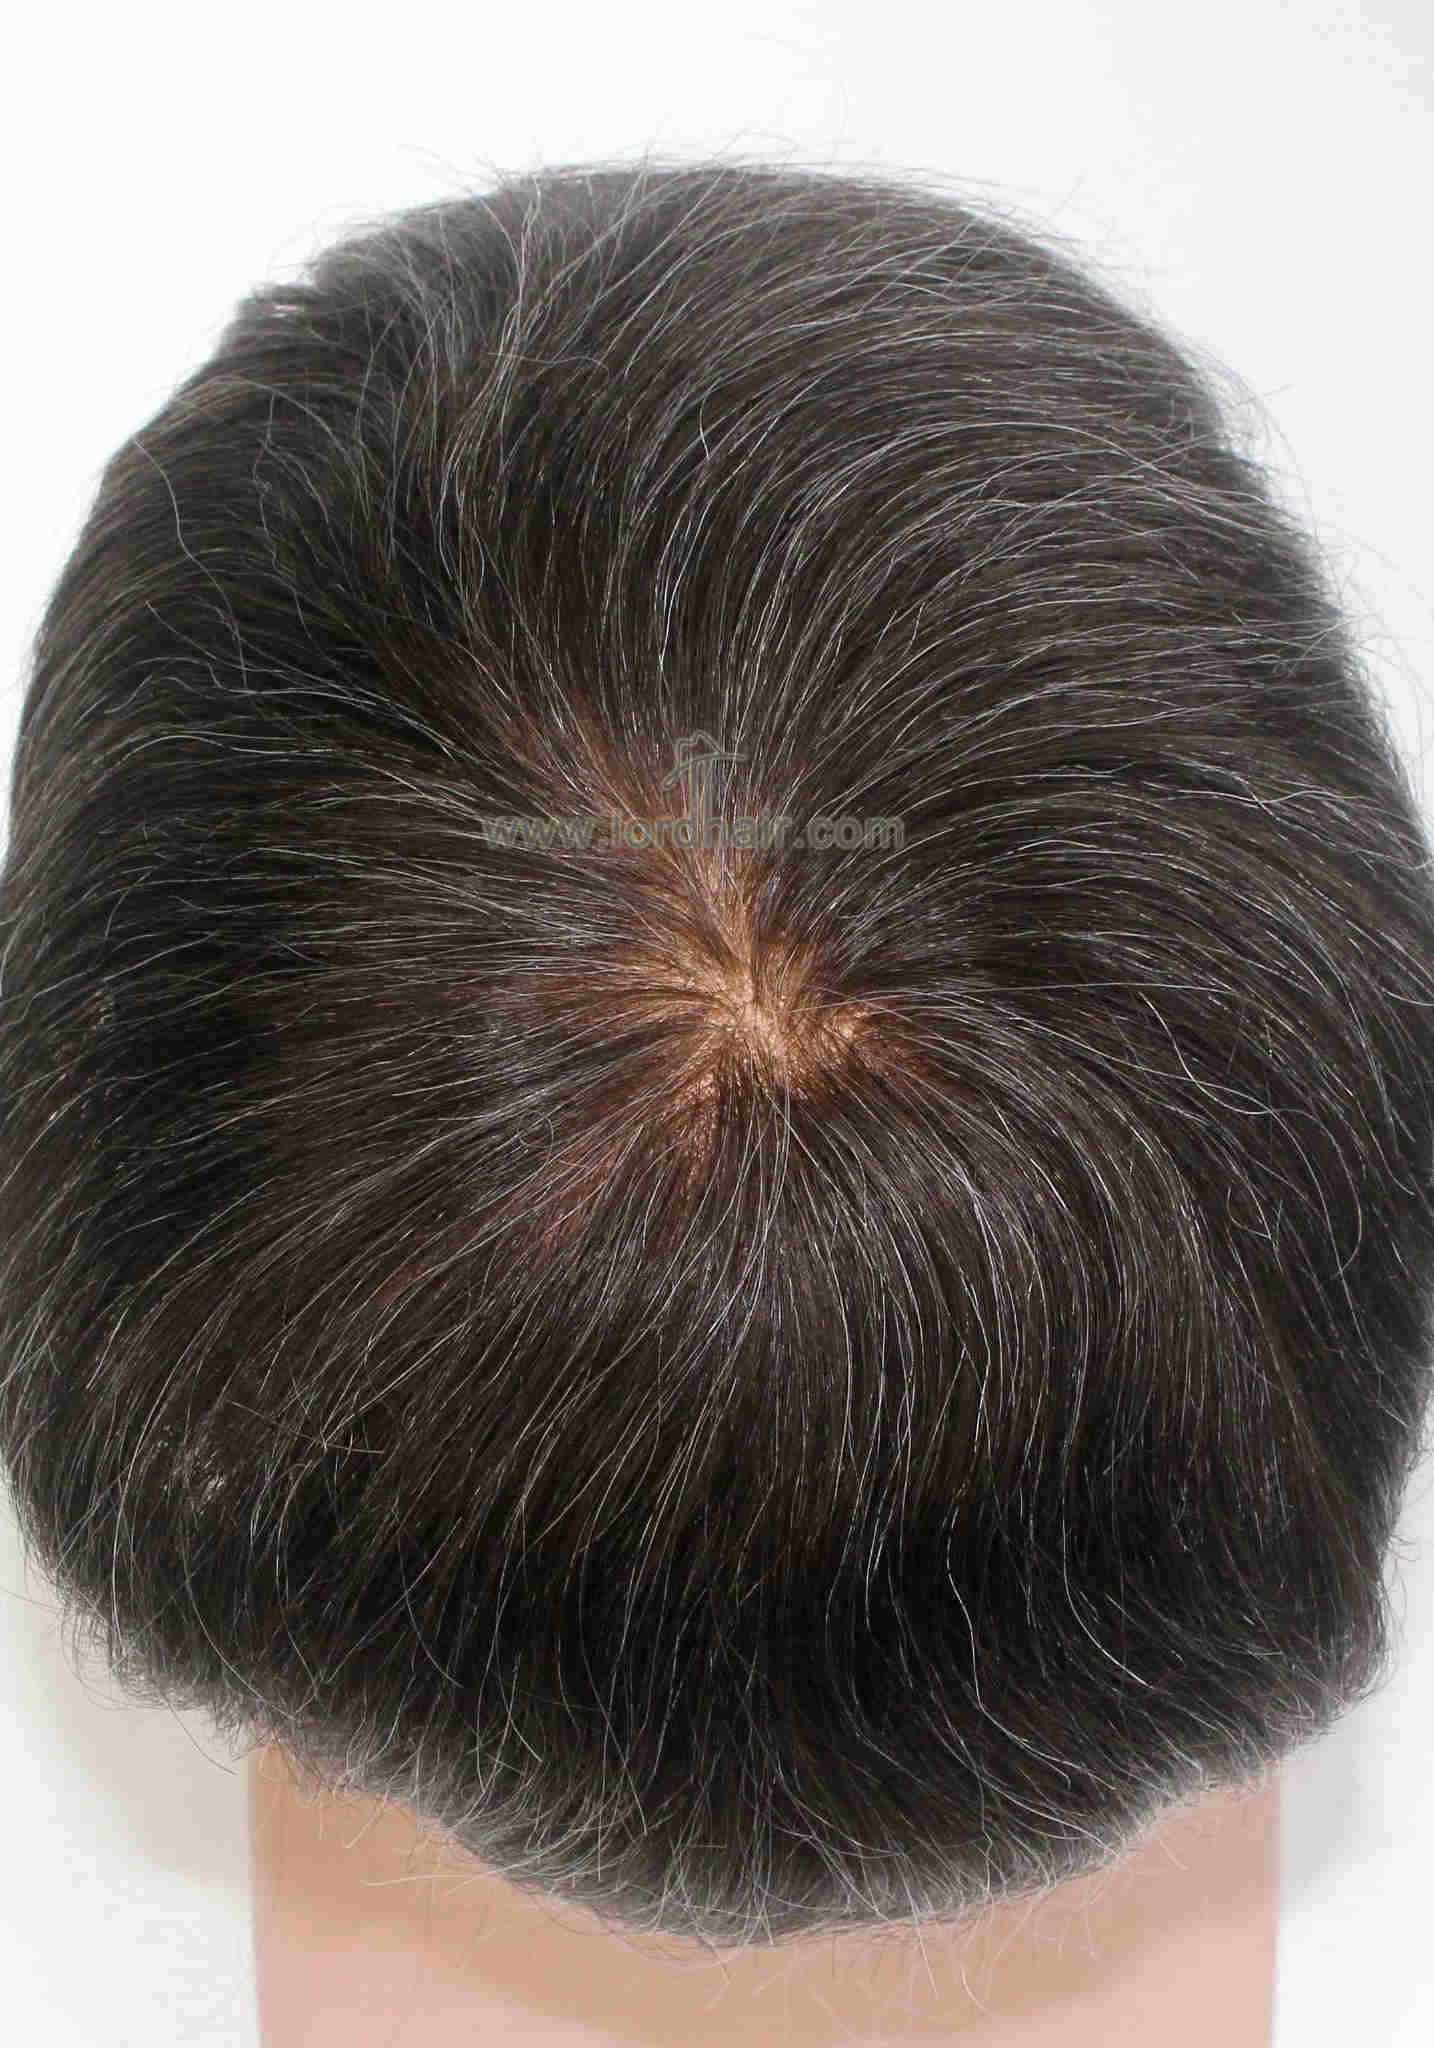 Best Full French Lace Base Indian Human Hair Toupee for Men